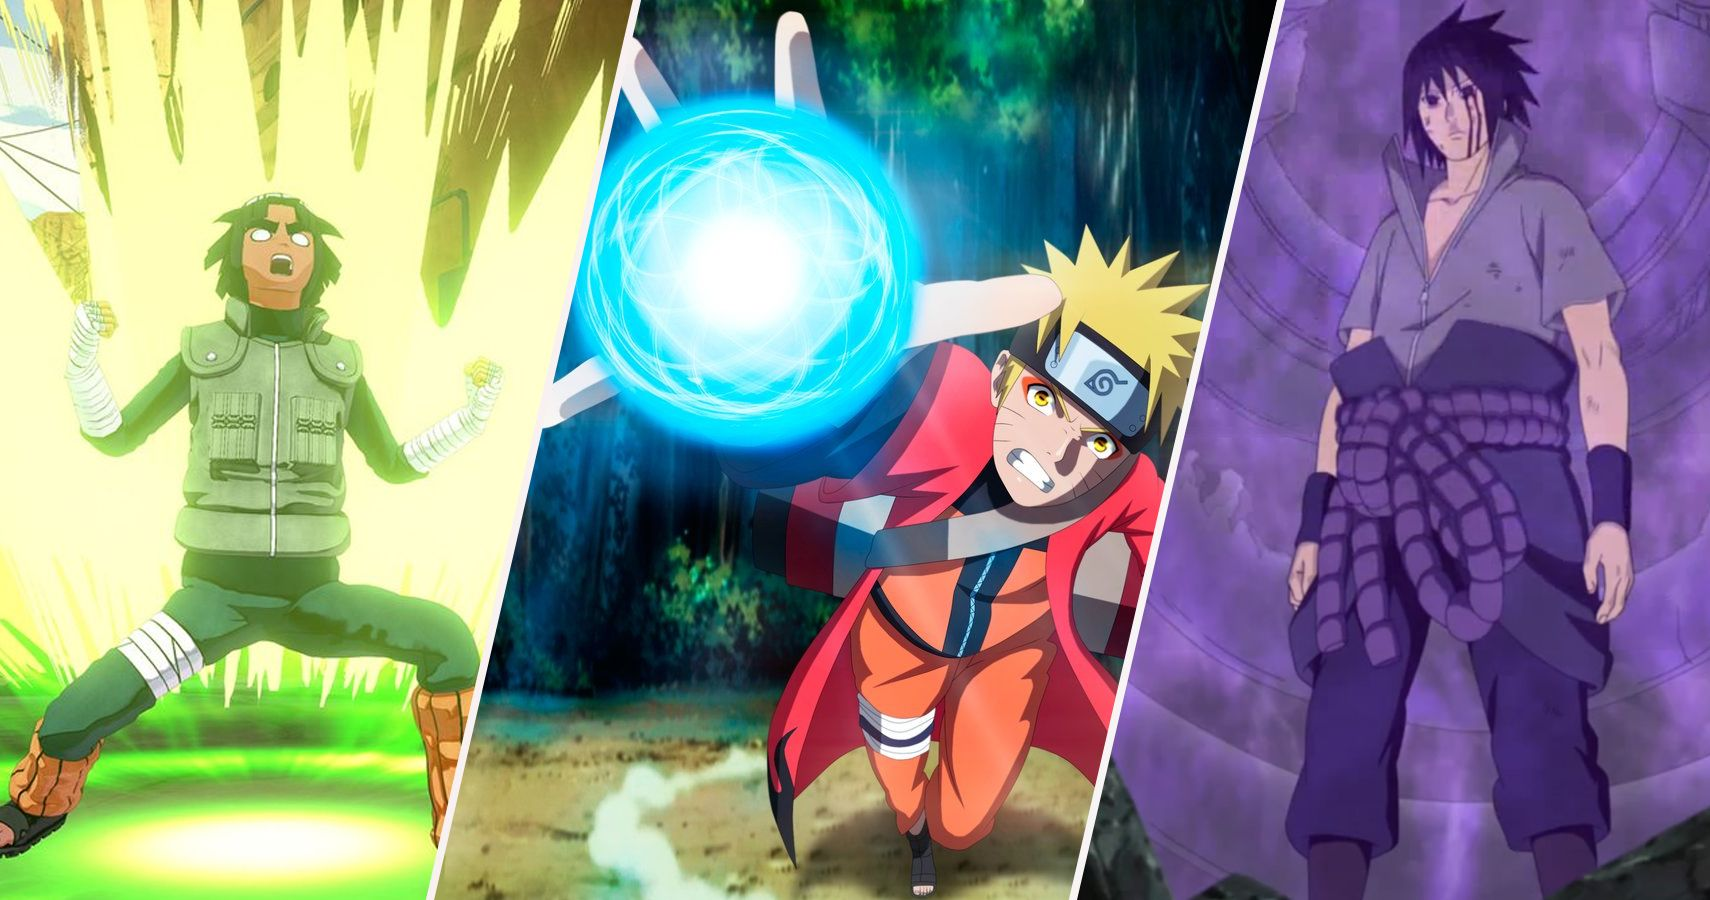 Naruto: The 15 Most Powerful Attacks (And 10 That Are Worthless)